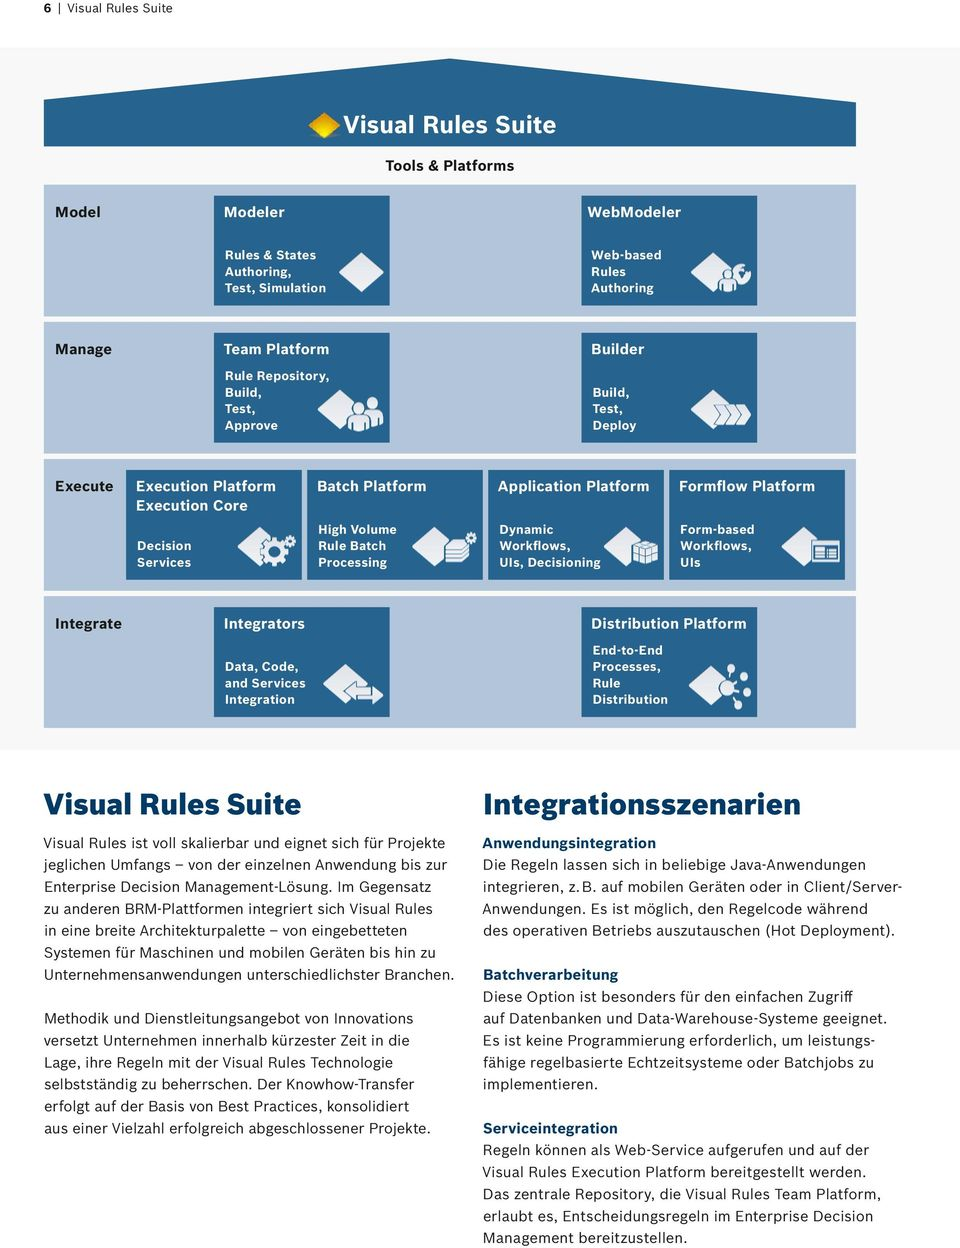 Workflows, UIs, Decisioning Form-based Workflows, UIs Integrate Integrators Data, Code, and Services Integration Distribution Platform End-to-End Processes, Rule Distribution Visual Rules Suite